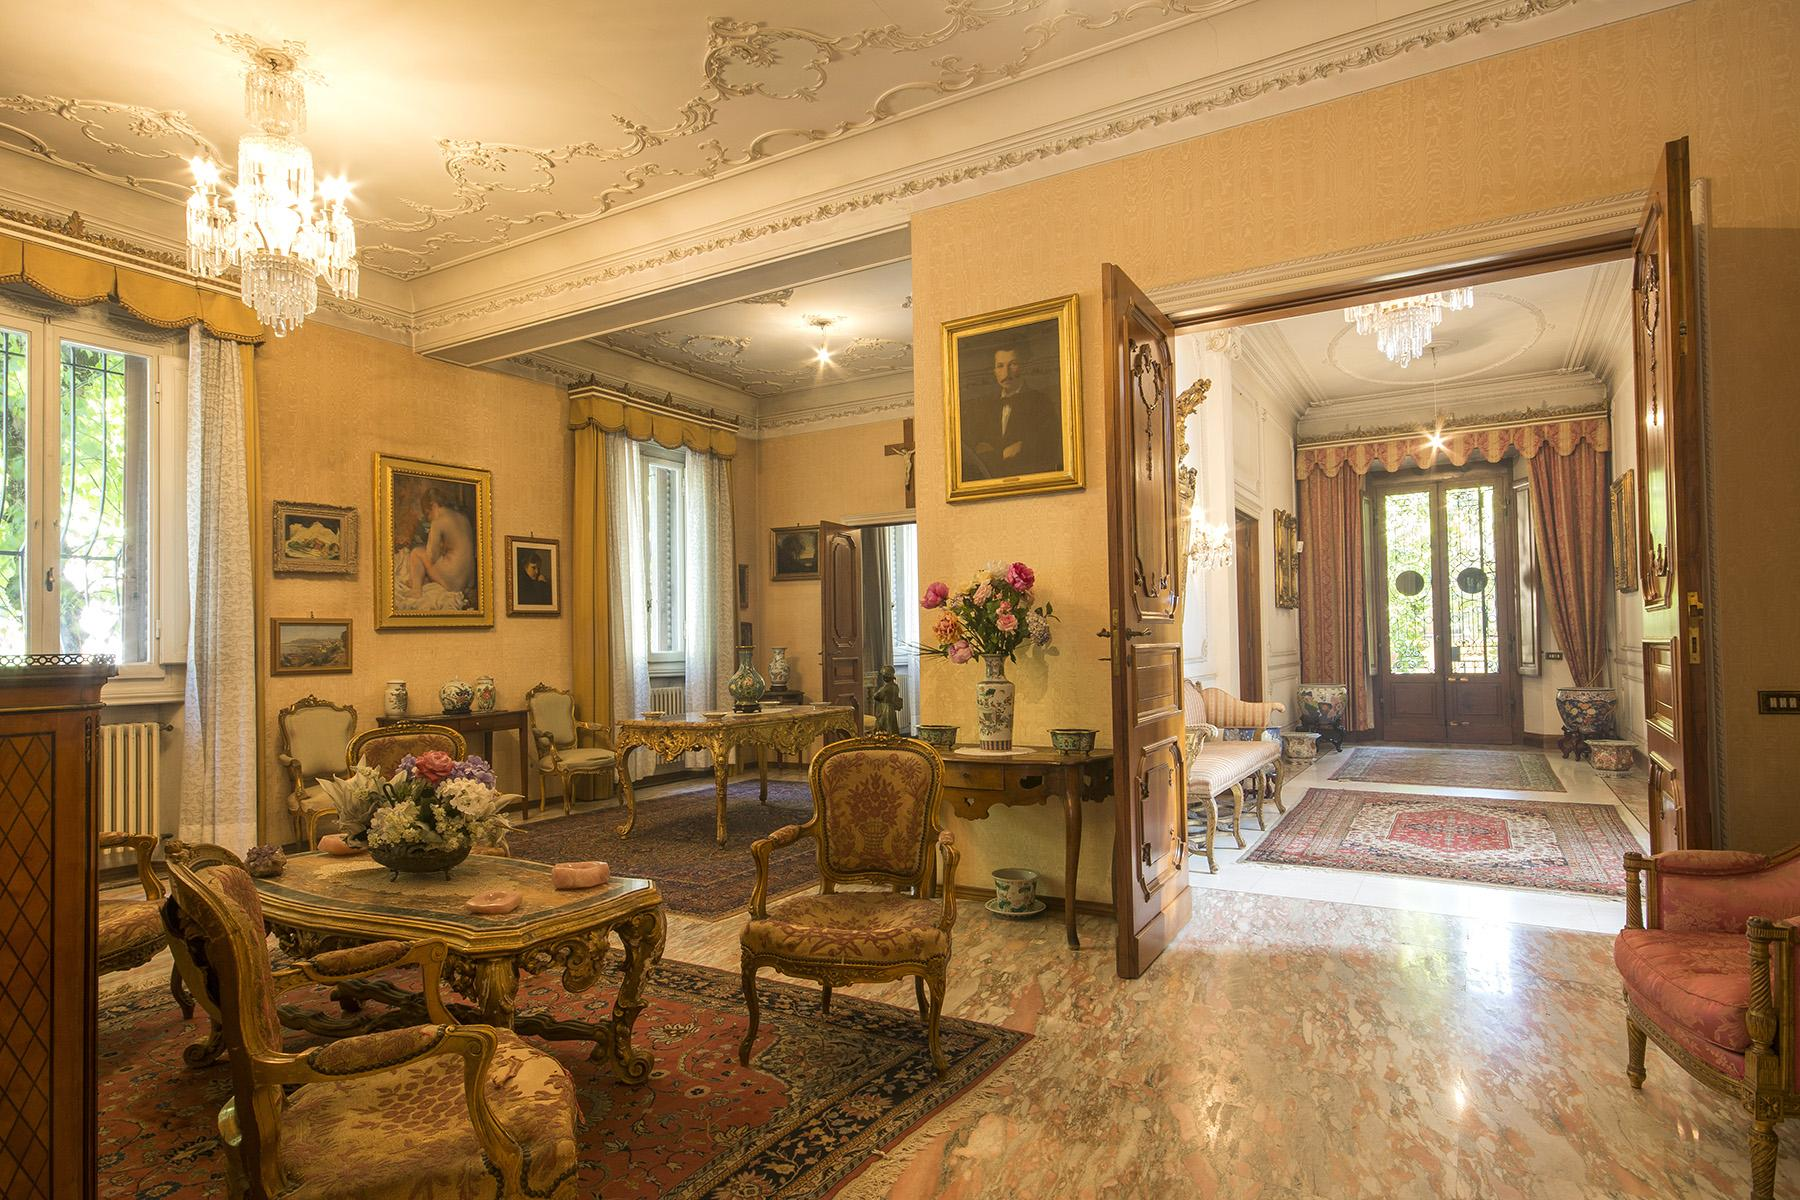 Elegant 20th century villa in Montecatini - 7